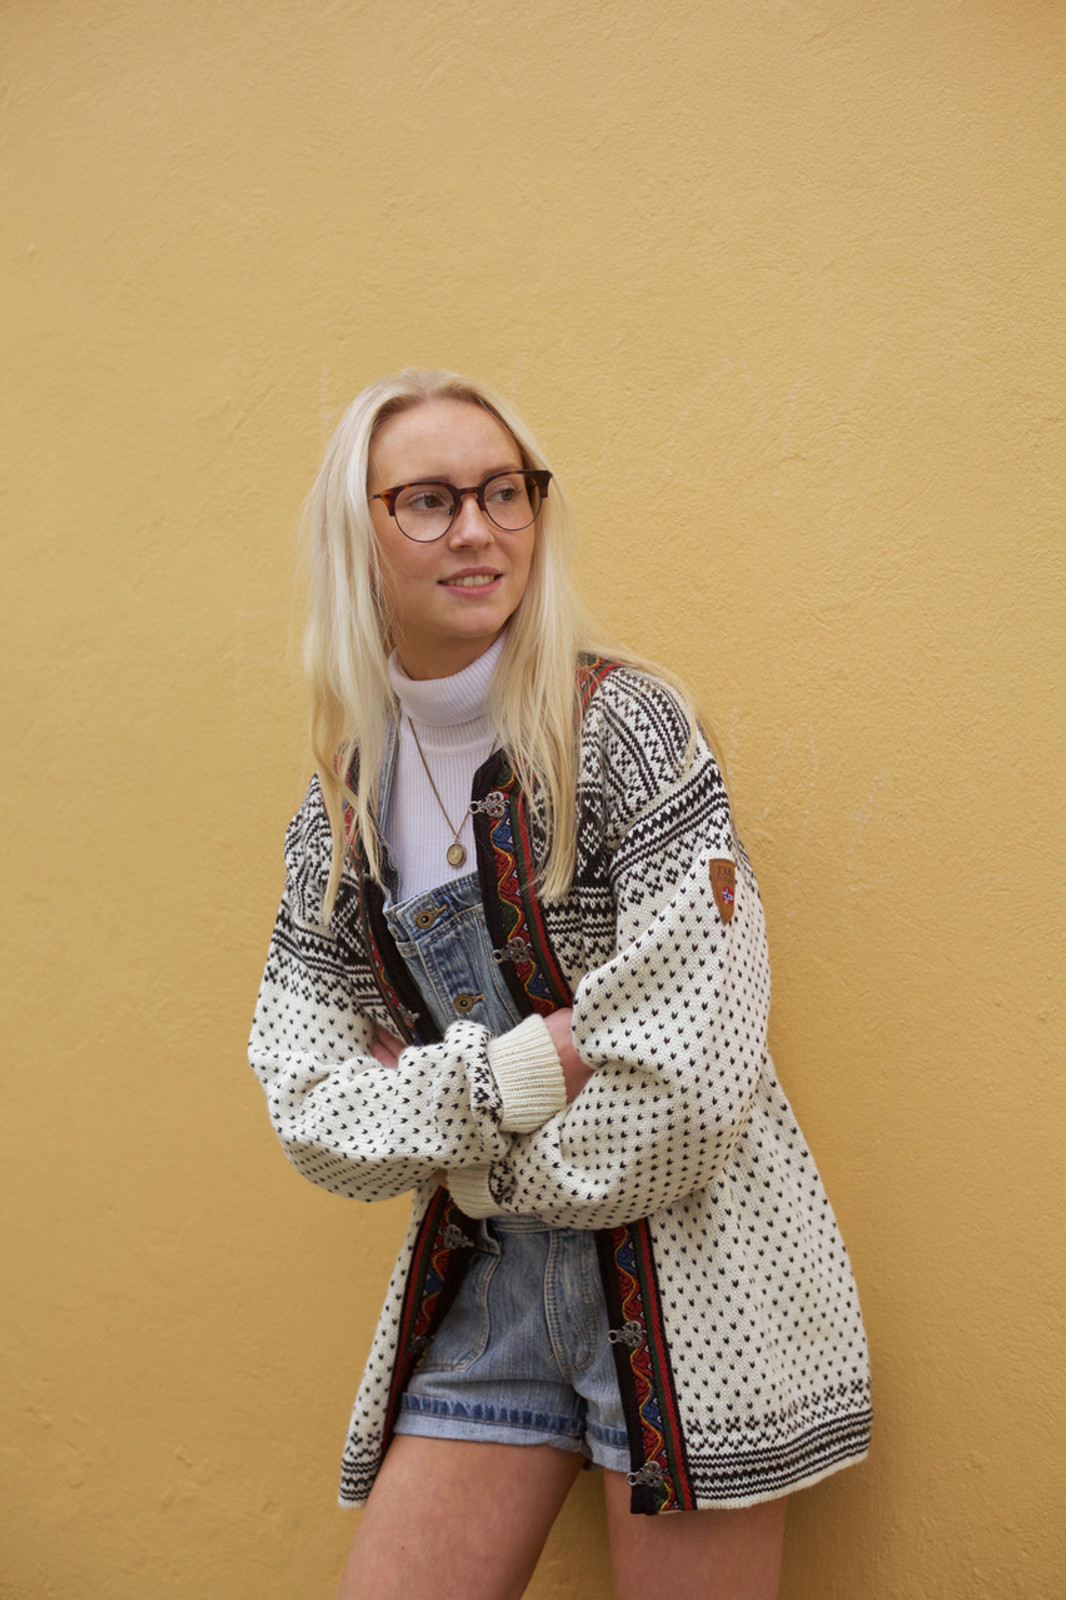 Girl wearing Dale of Norway's new unisex Setesdal cardigan in Off White/Black, 83291-A